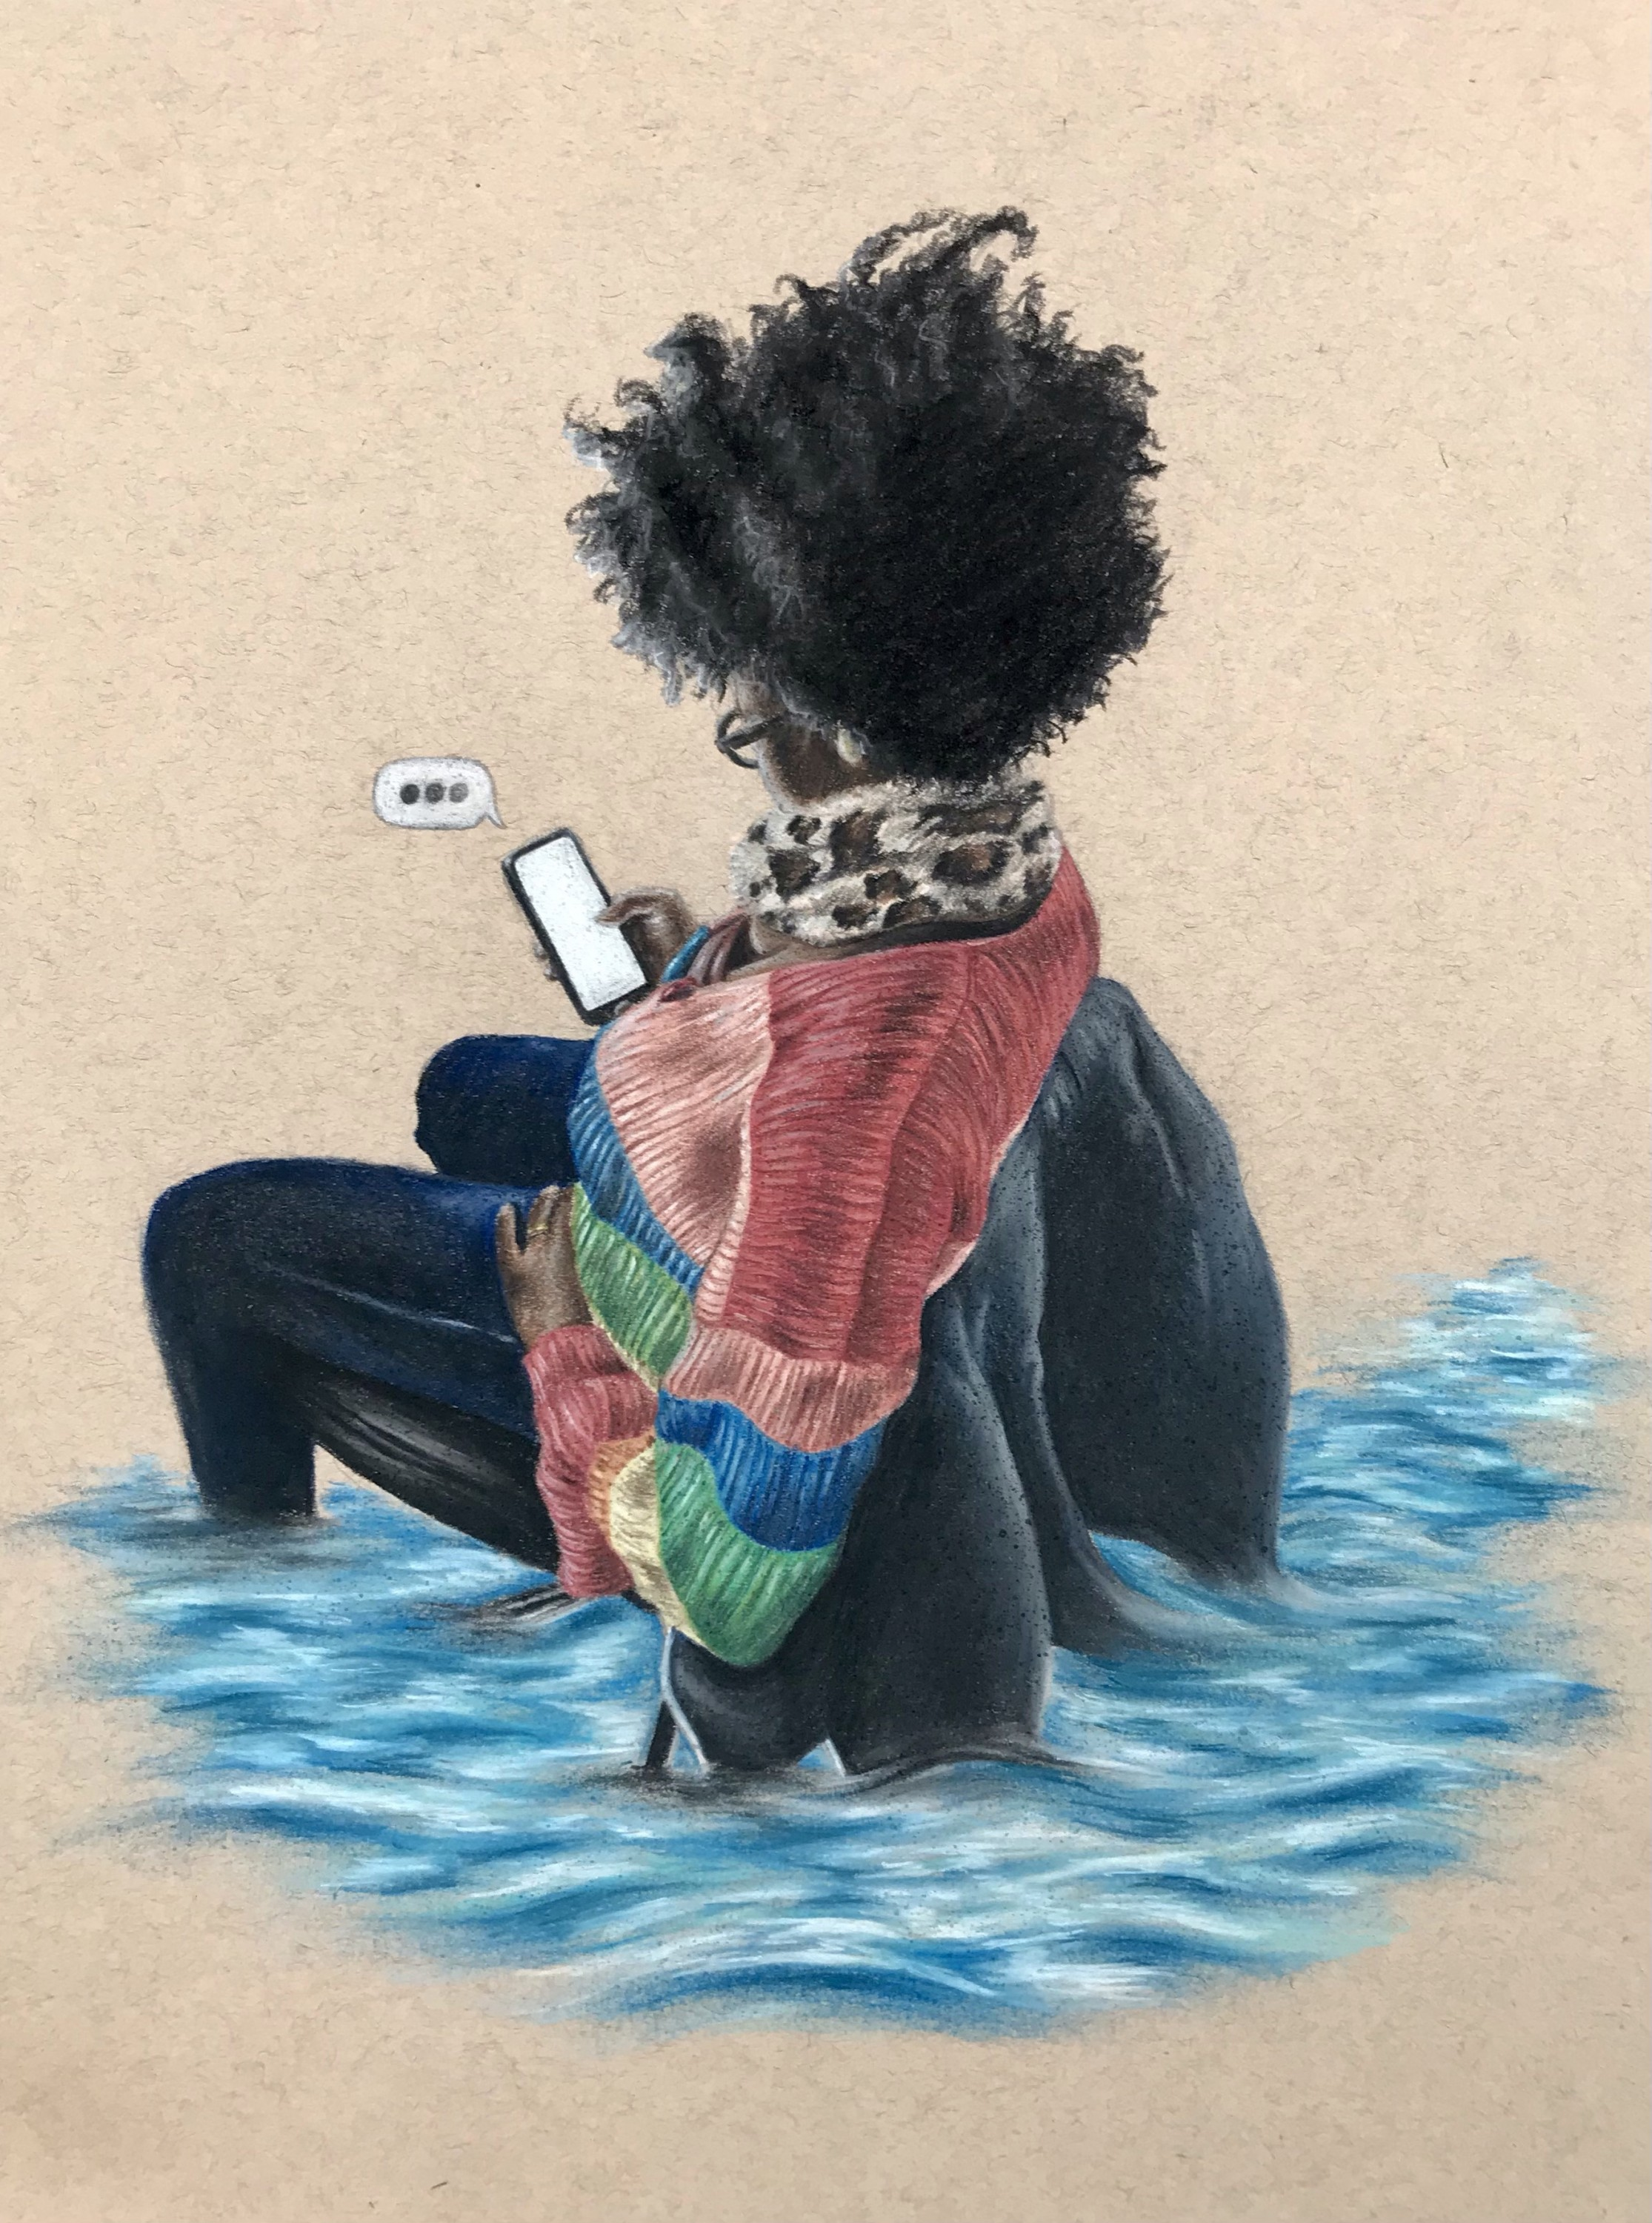 Black subject wearing a colorful fabric sweater holding a cellular device submerged in water.